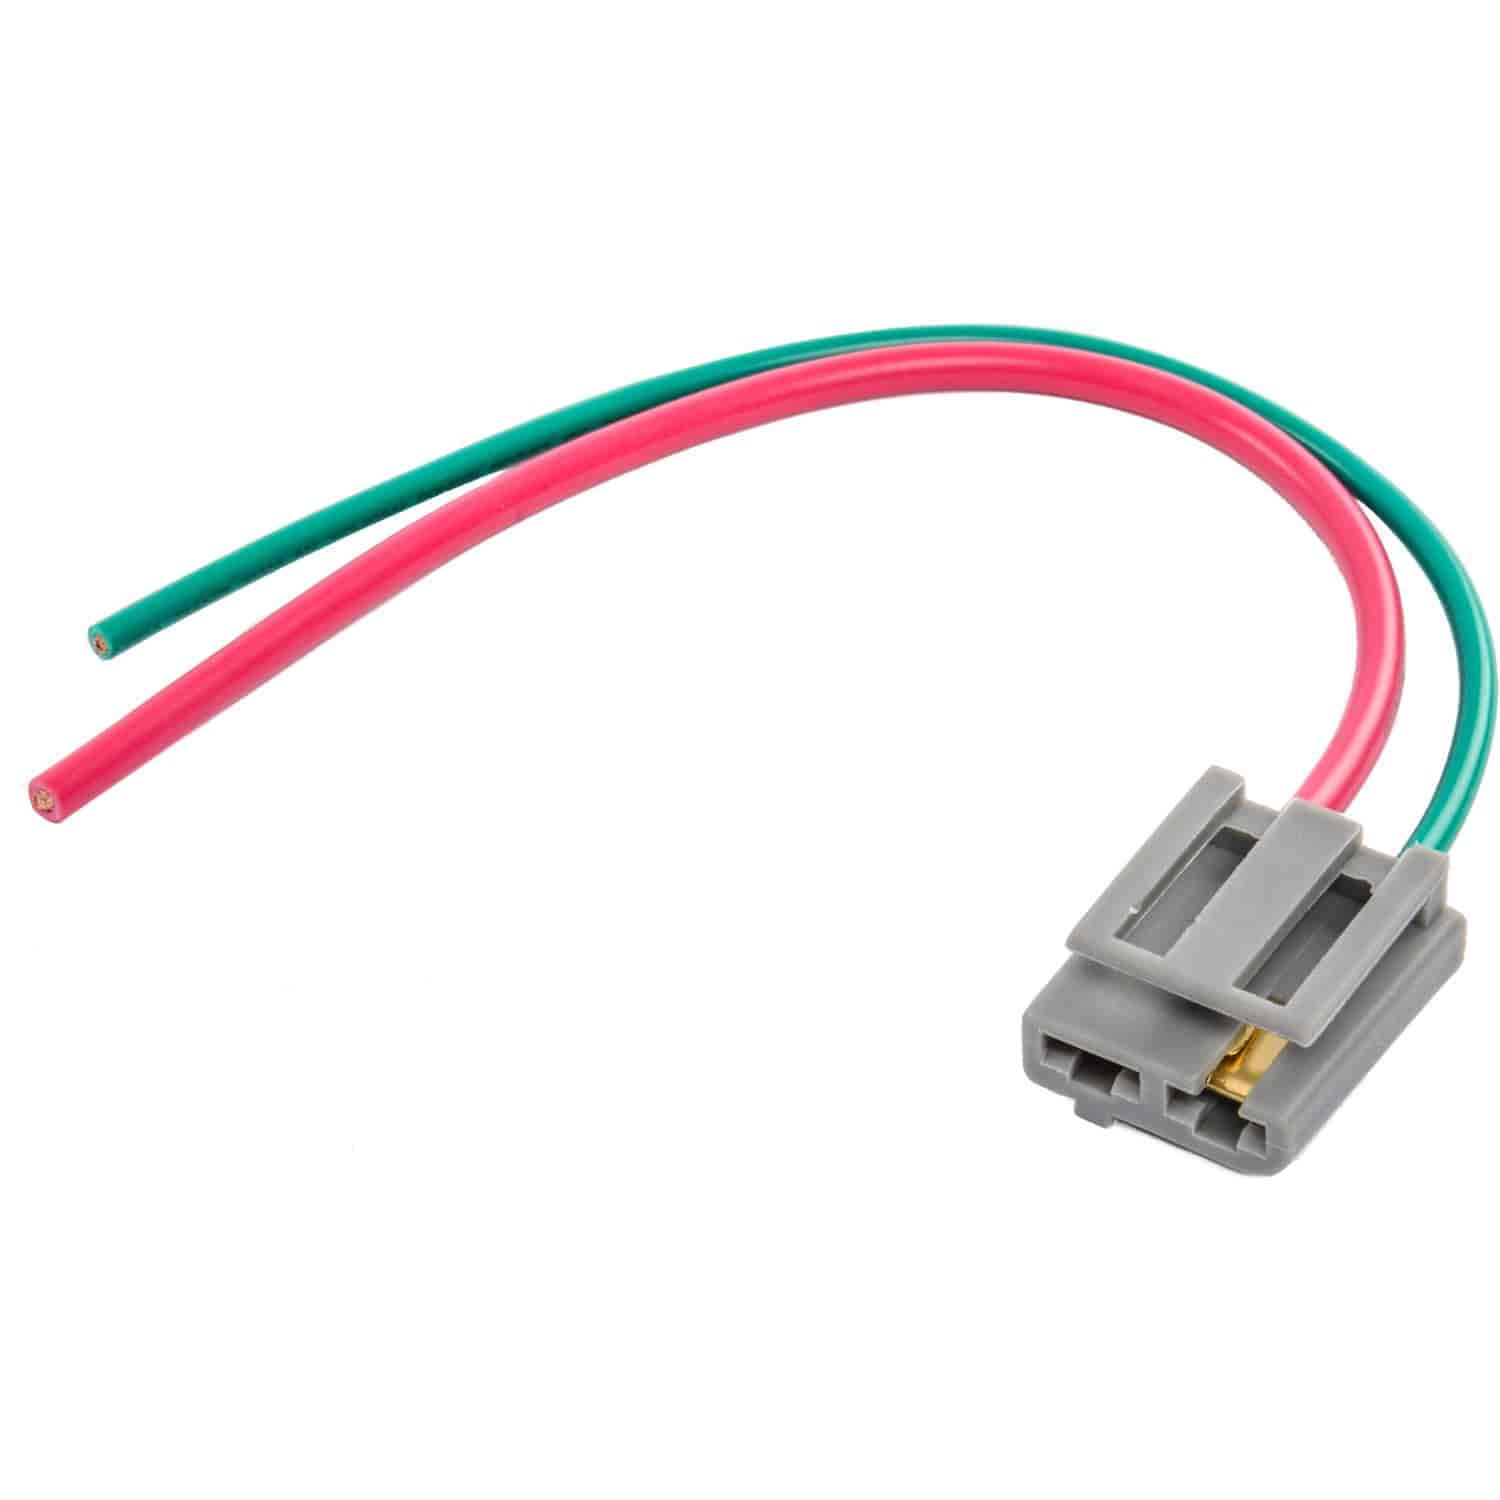 accel 170072 hei battery tachometer pigtail connector gm hei rh jegs com Pigtail Electrical Diagram 3 Prong Electric Range Pigtail